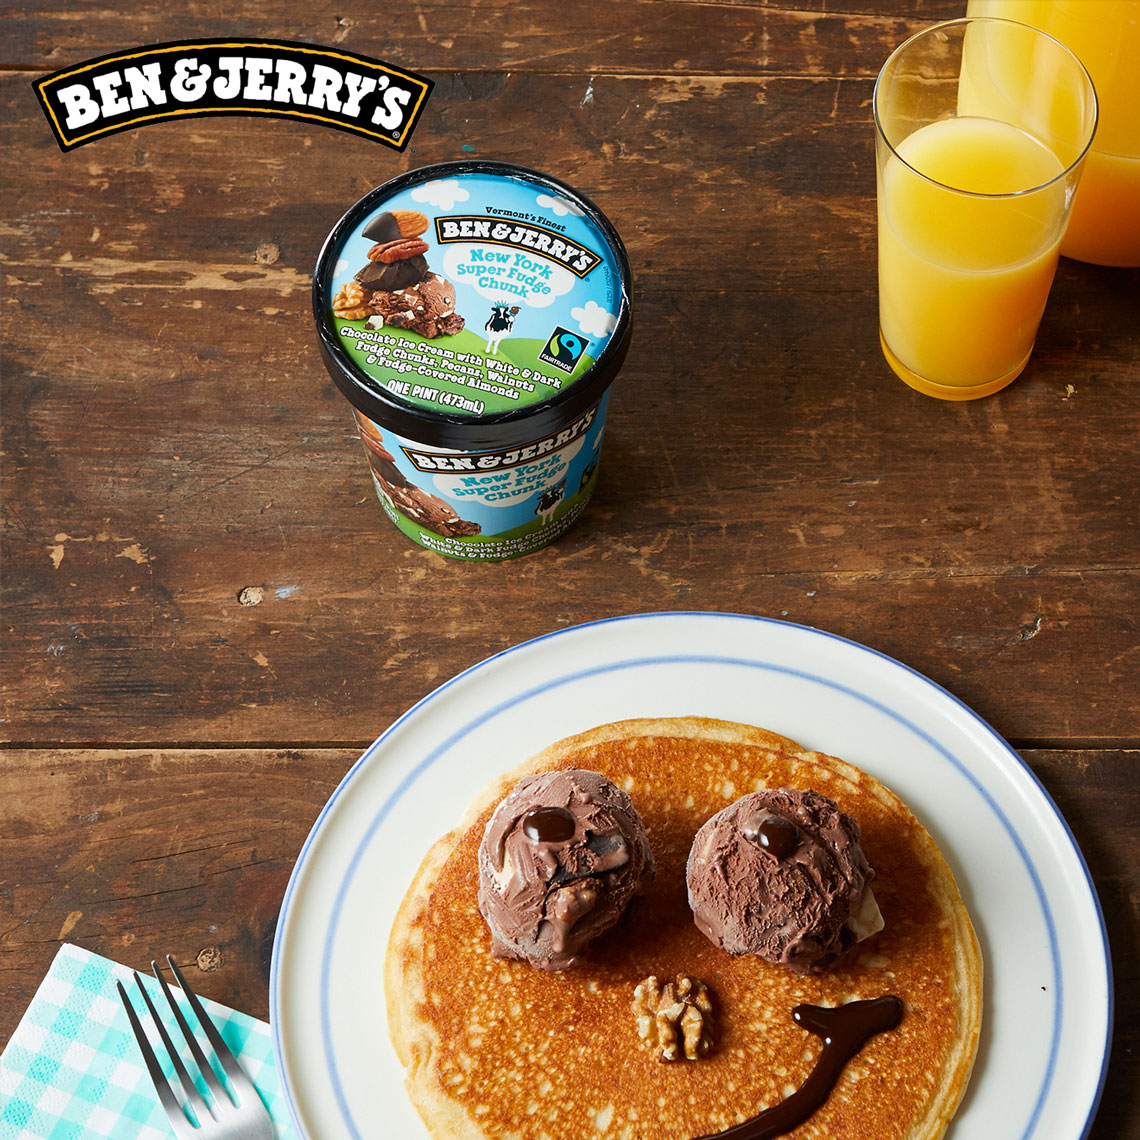 Evi-Abeler-Photography_Ben-Jerrys-New-York-Fudge